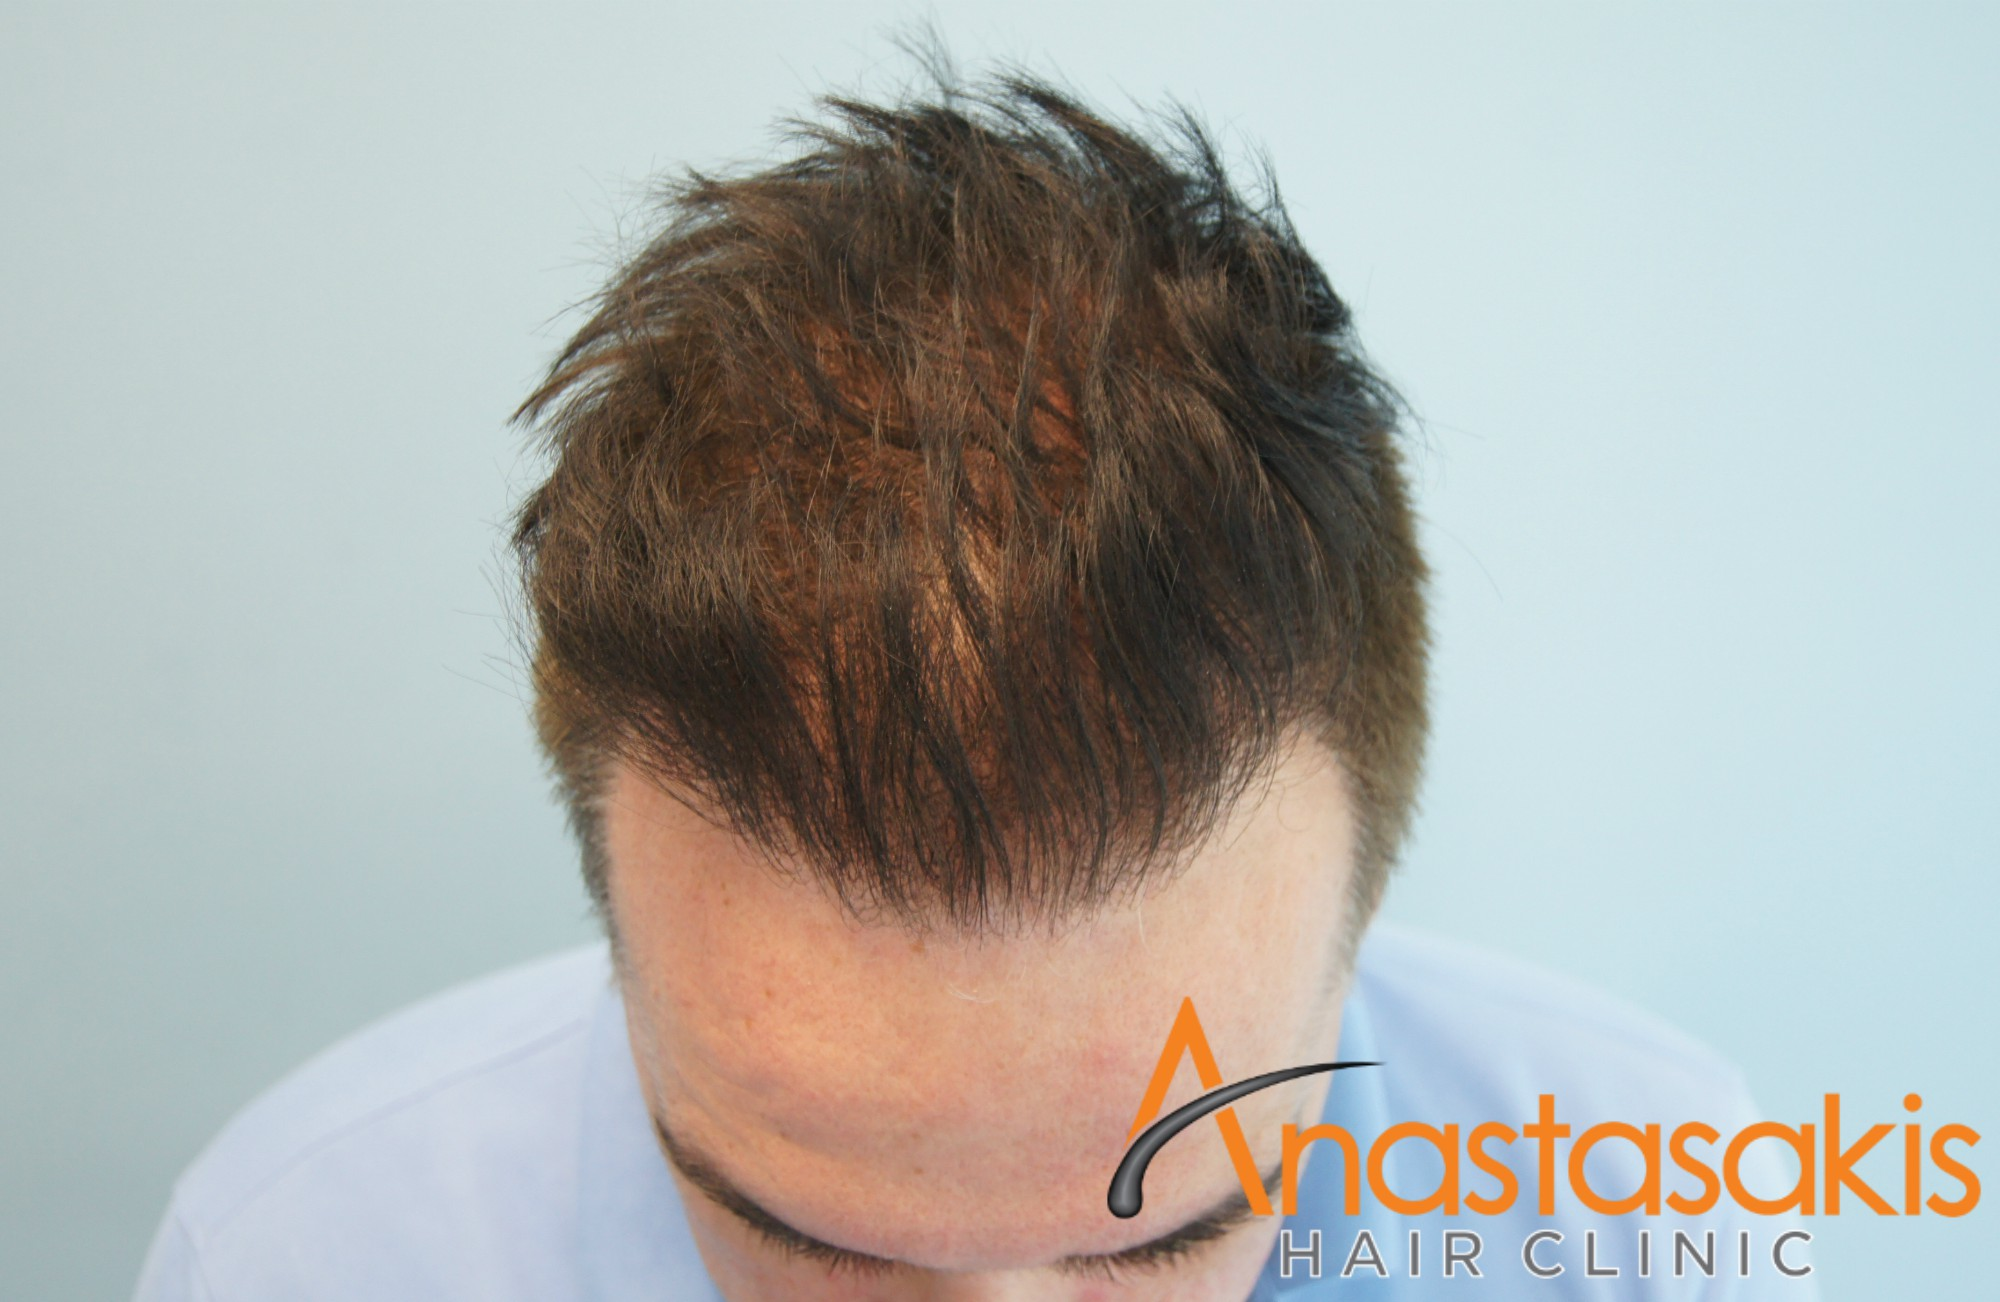 3500fus-result-anastasakis-hair-clinic-megasession